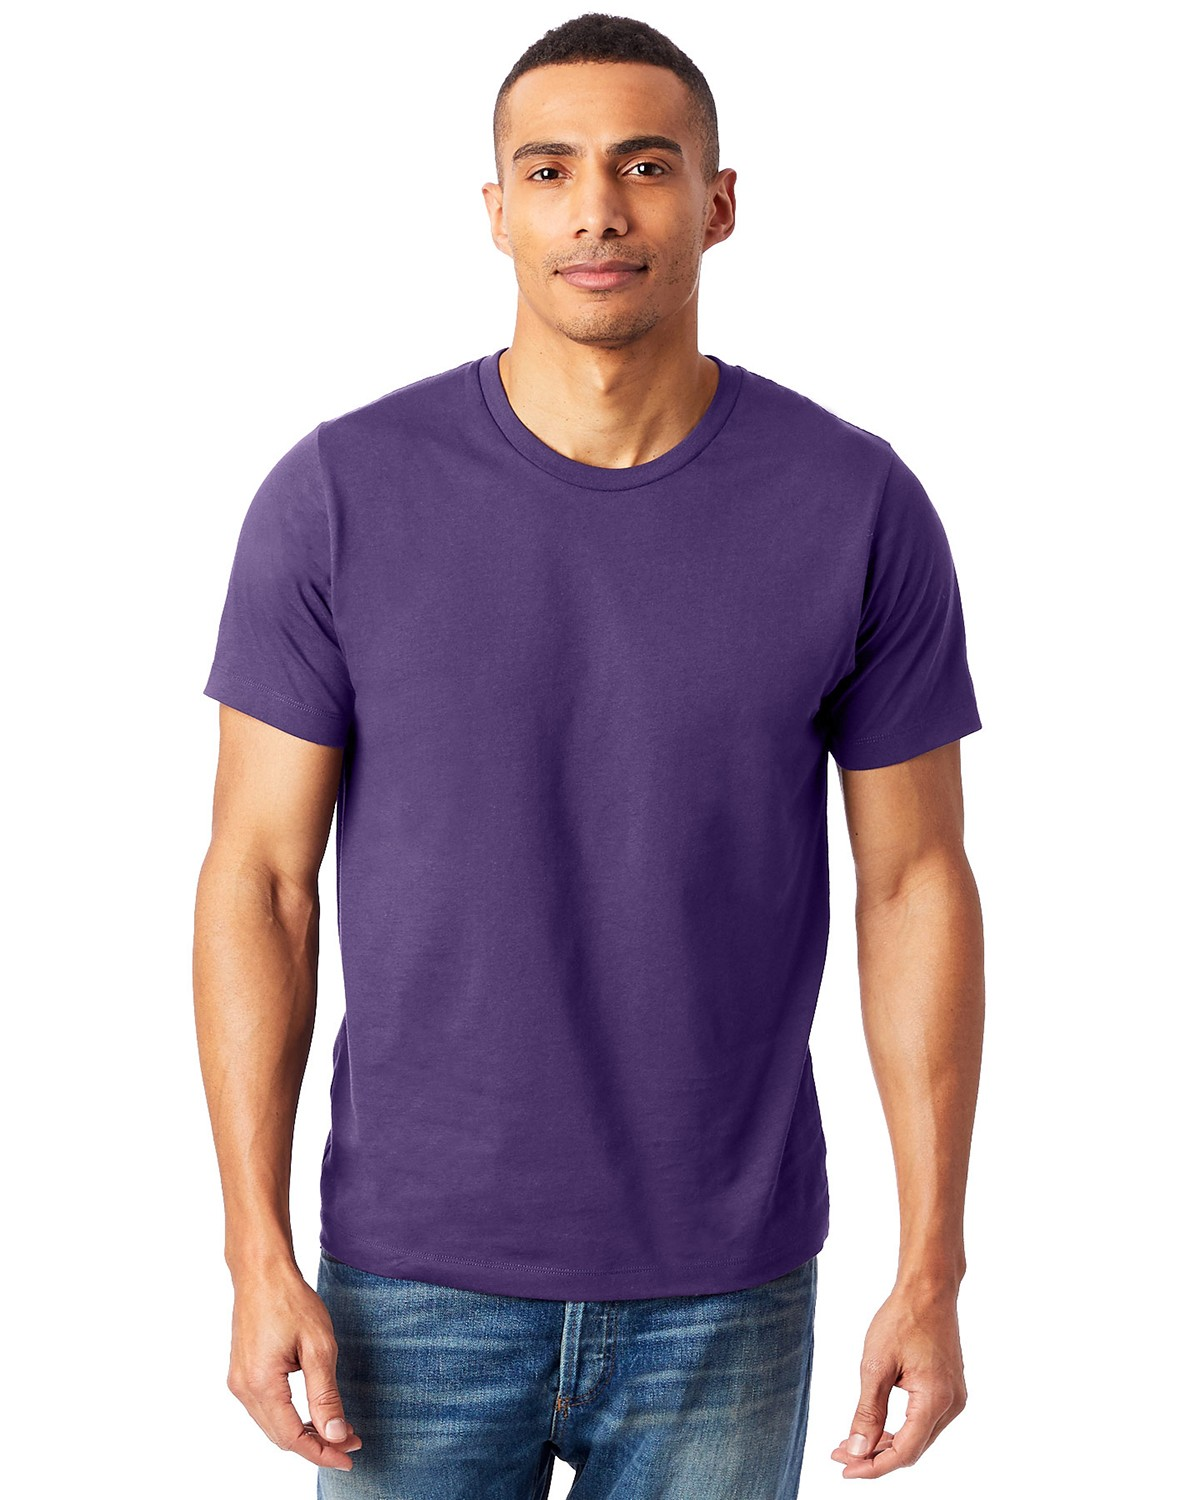 AA1070 Alternative DEEP VIOLET